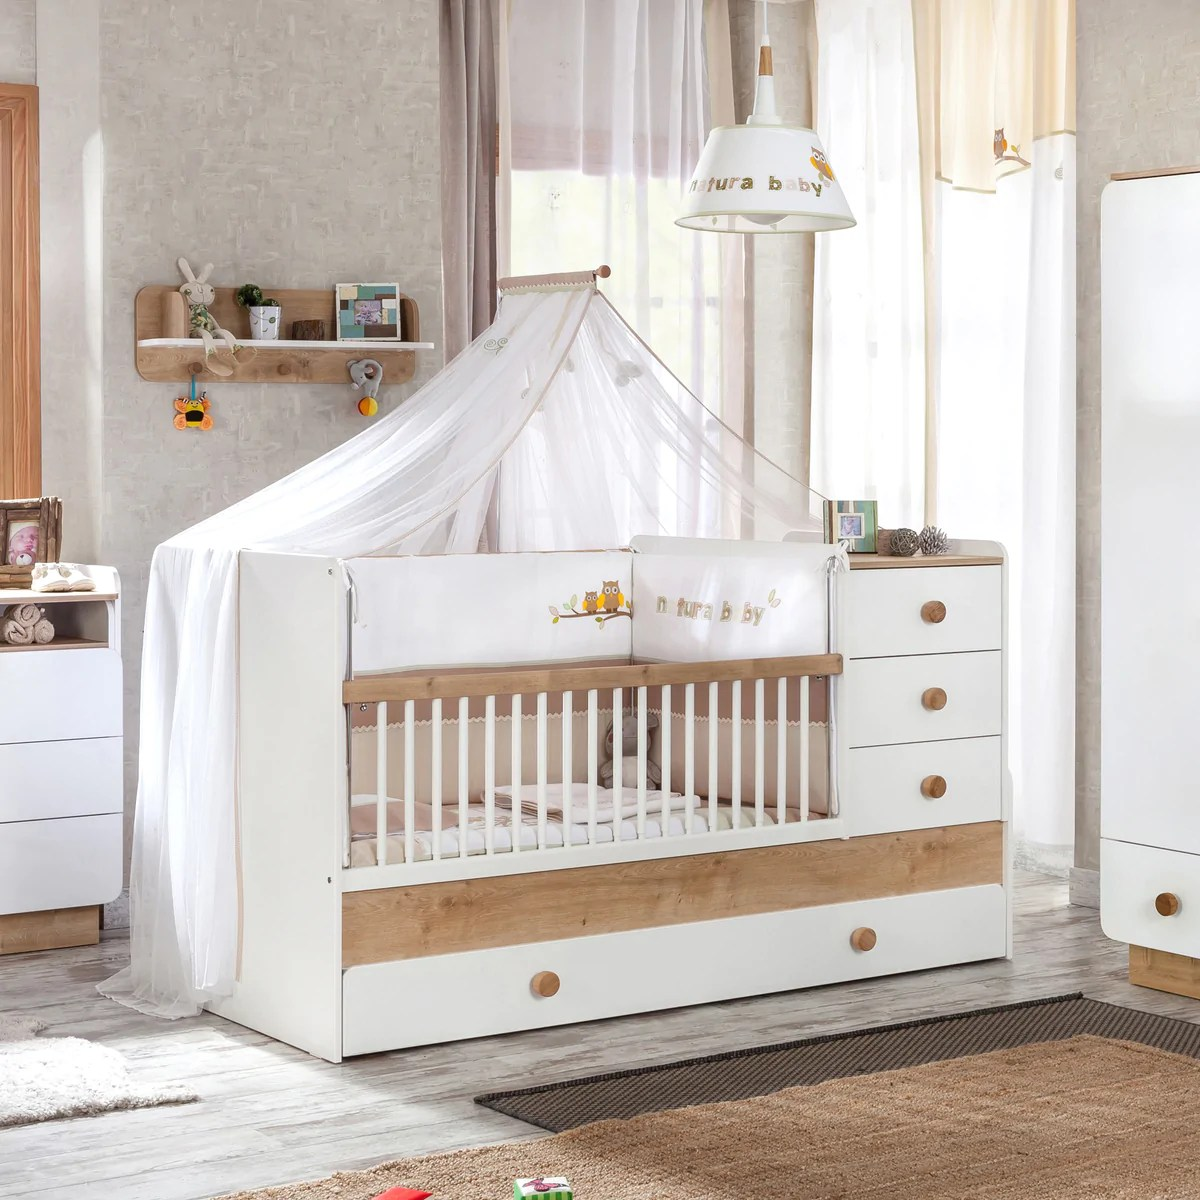 Baby Cots That Attach To Beds Baby Cots Singapore Baby Cots Kids Haven